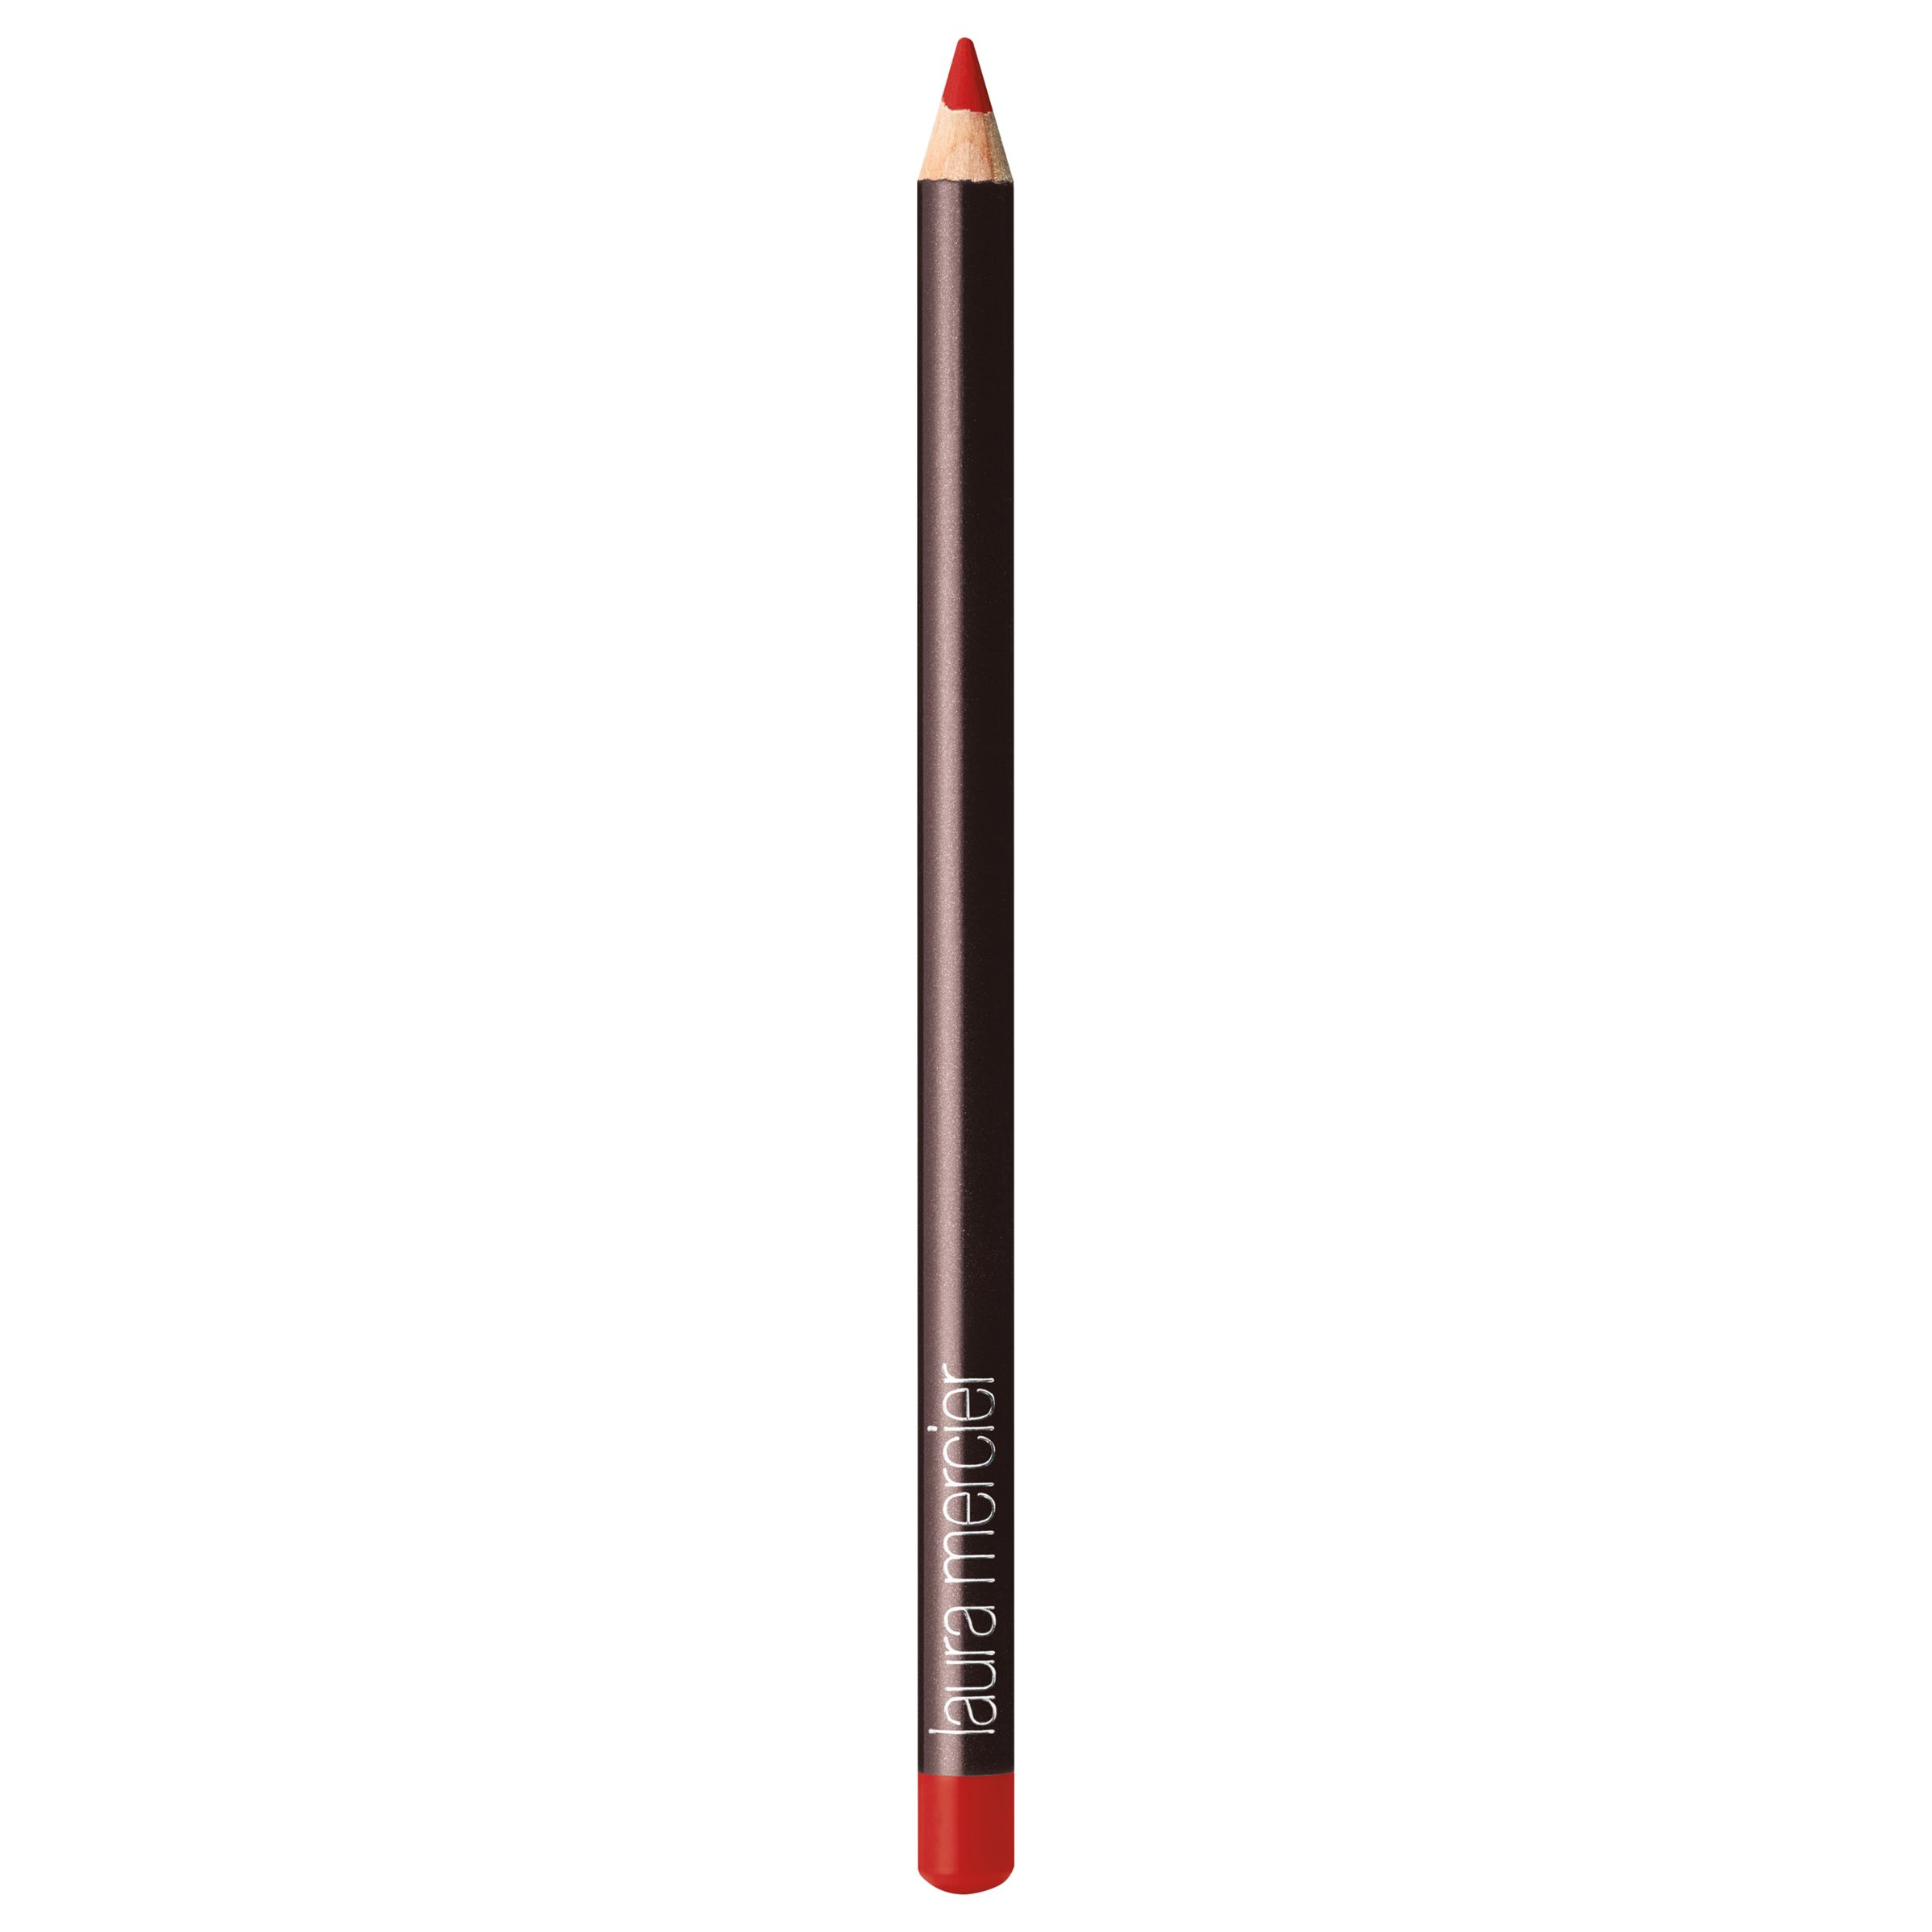 Laura Mercier Laura Mercier Joie De Vivre Lip Pencil